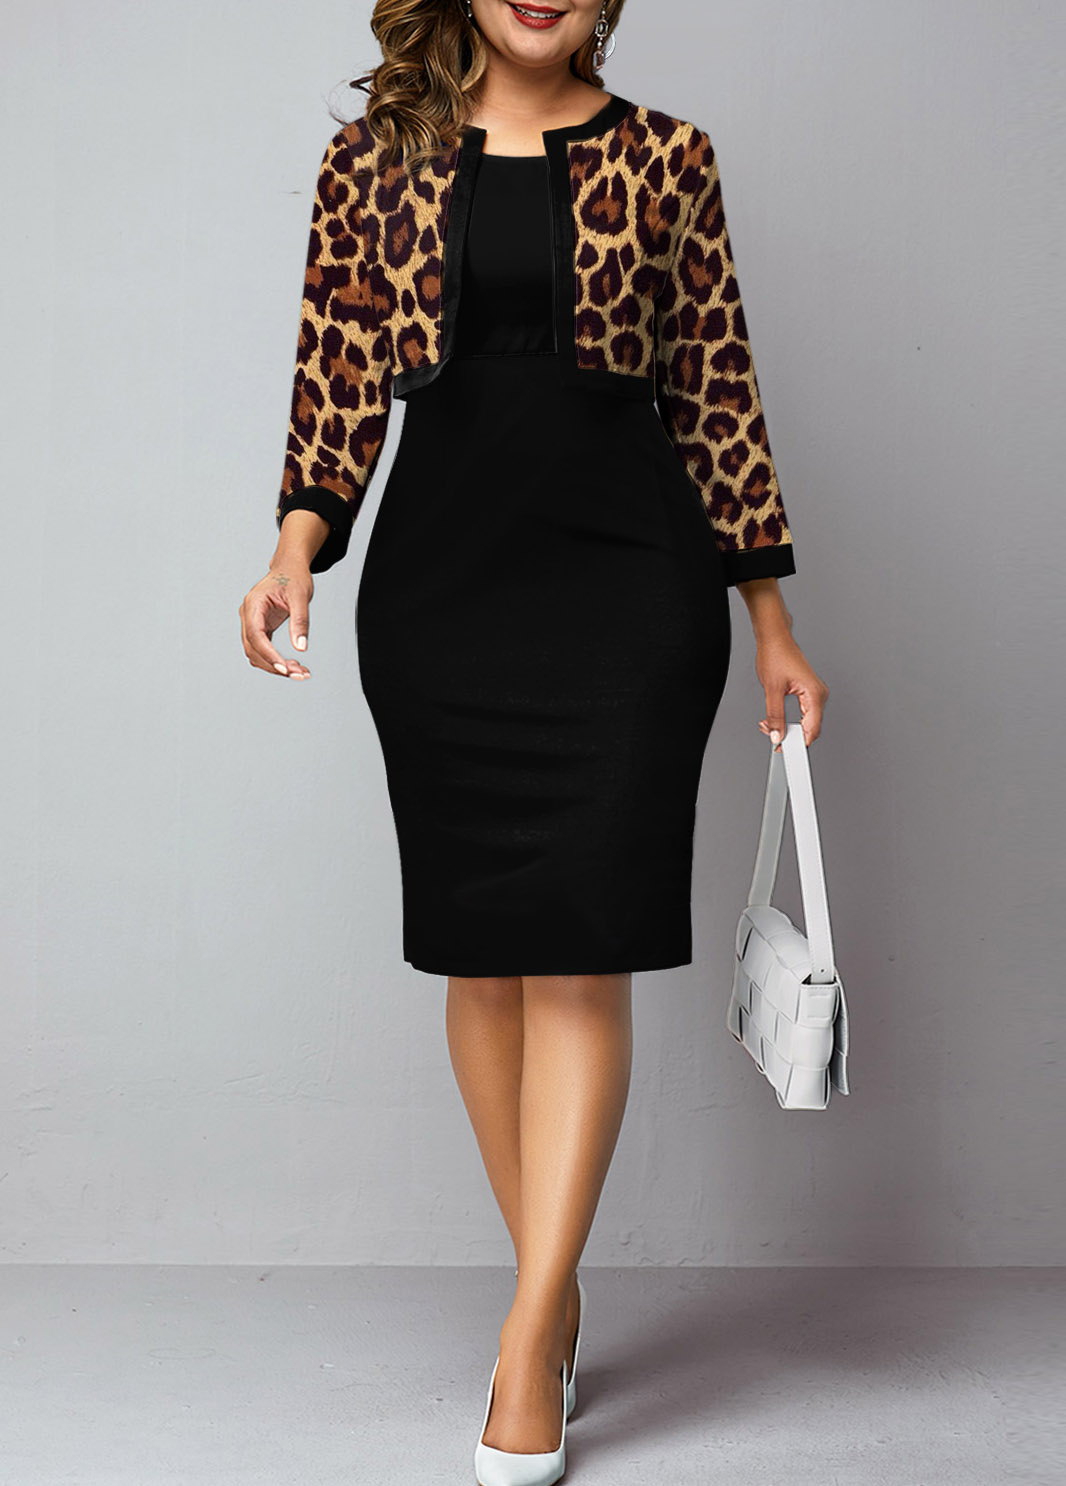 Plus Size Leopard Cardigan and Solid Dress